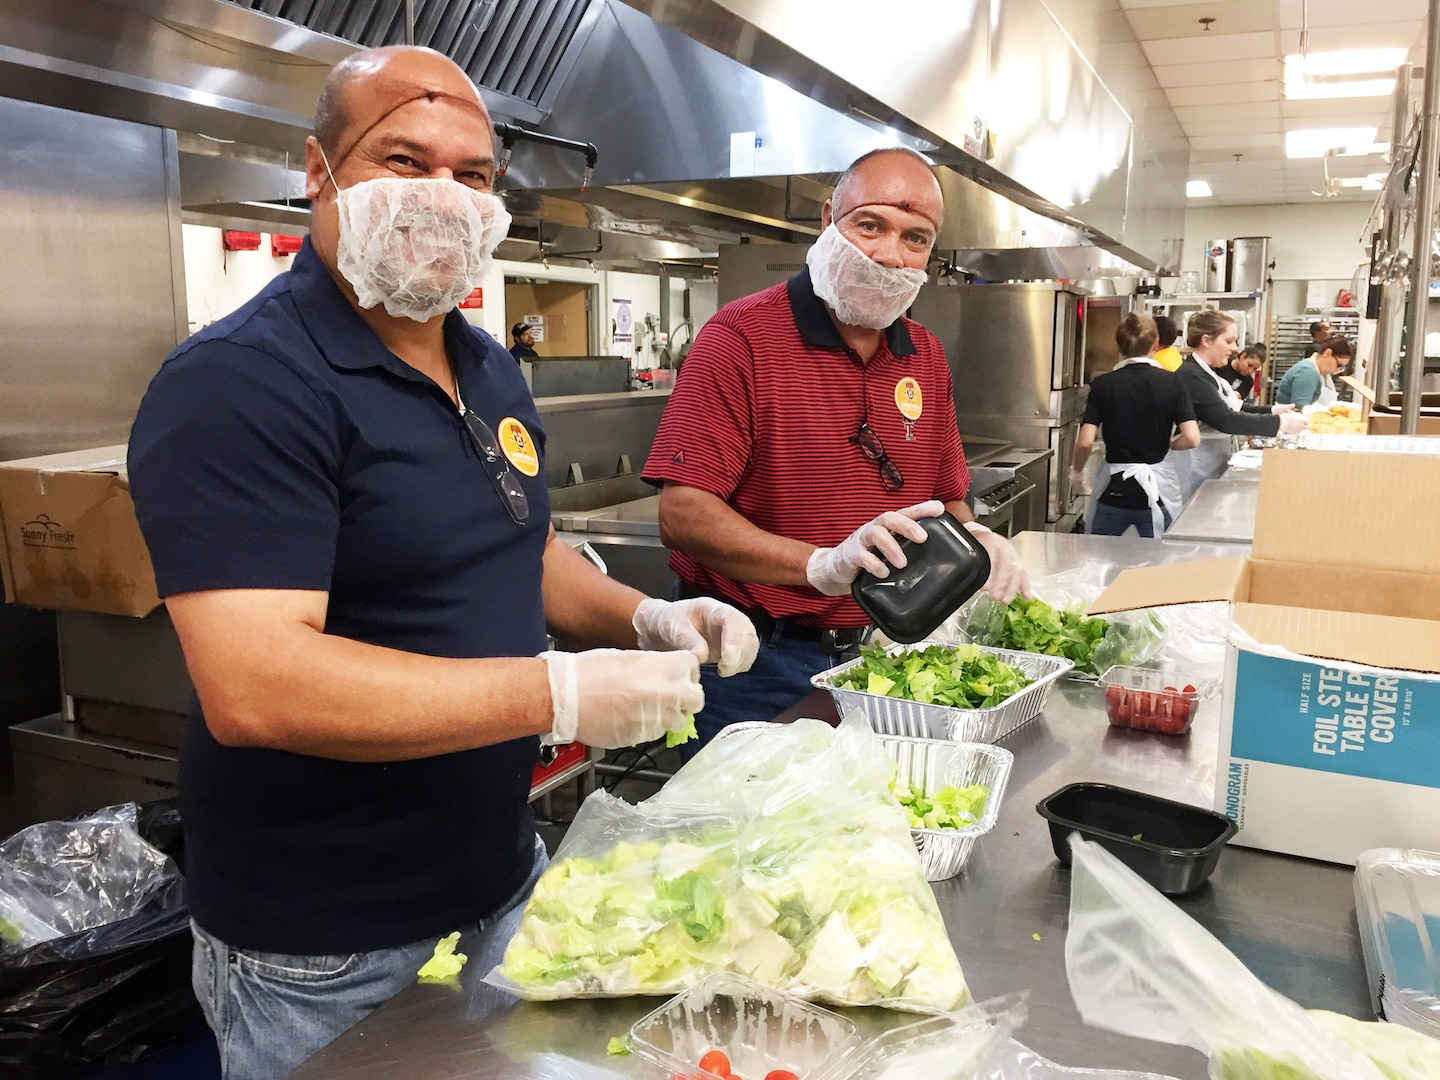 Two male employees wearing gloves prepare salads.